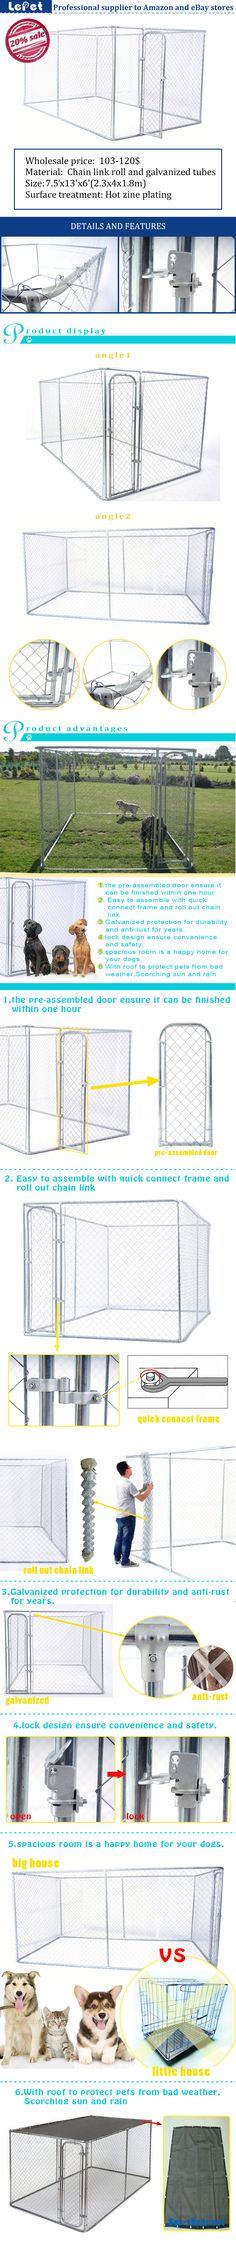 classic galvanized outdoor dog kennel/10x10x6ft dog kennel/dog kennel wholesale  cheap/discount/low price/buy discount/price/pricelist